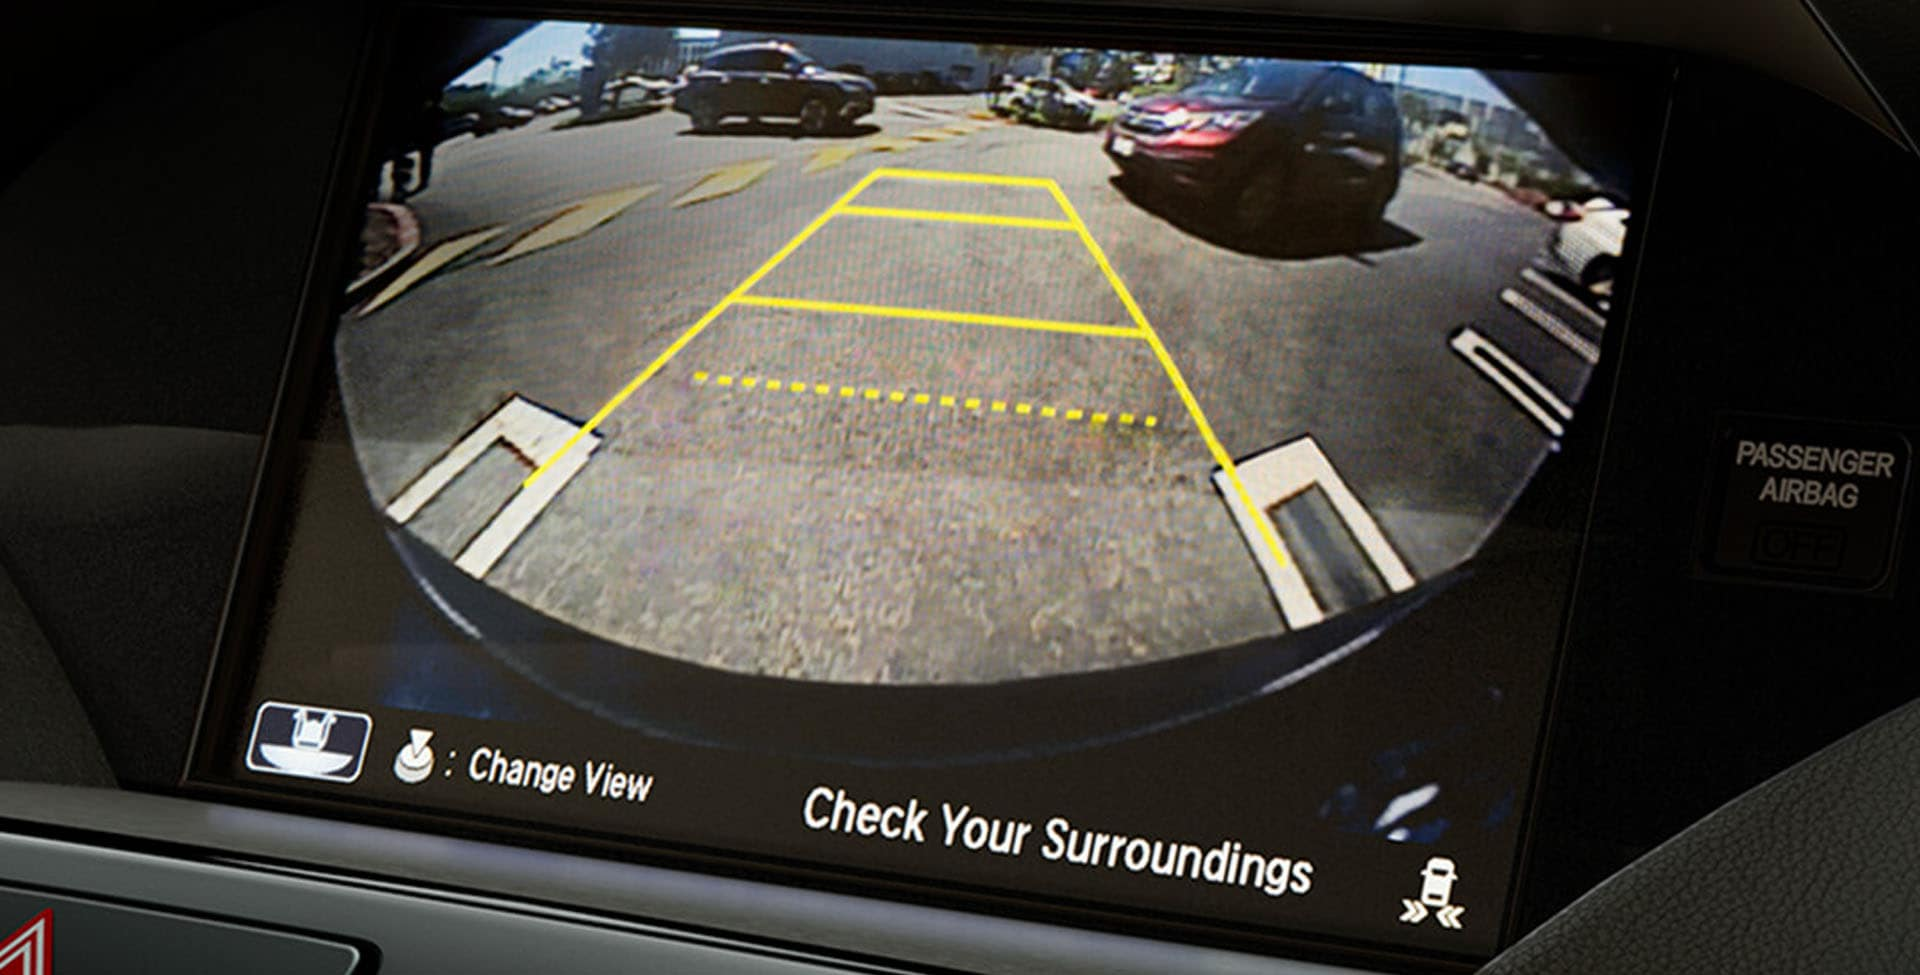 Acura ILX rearview camera